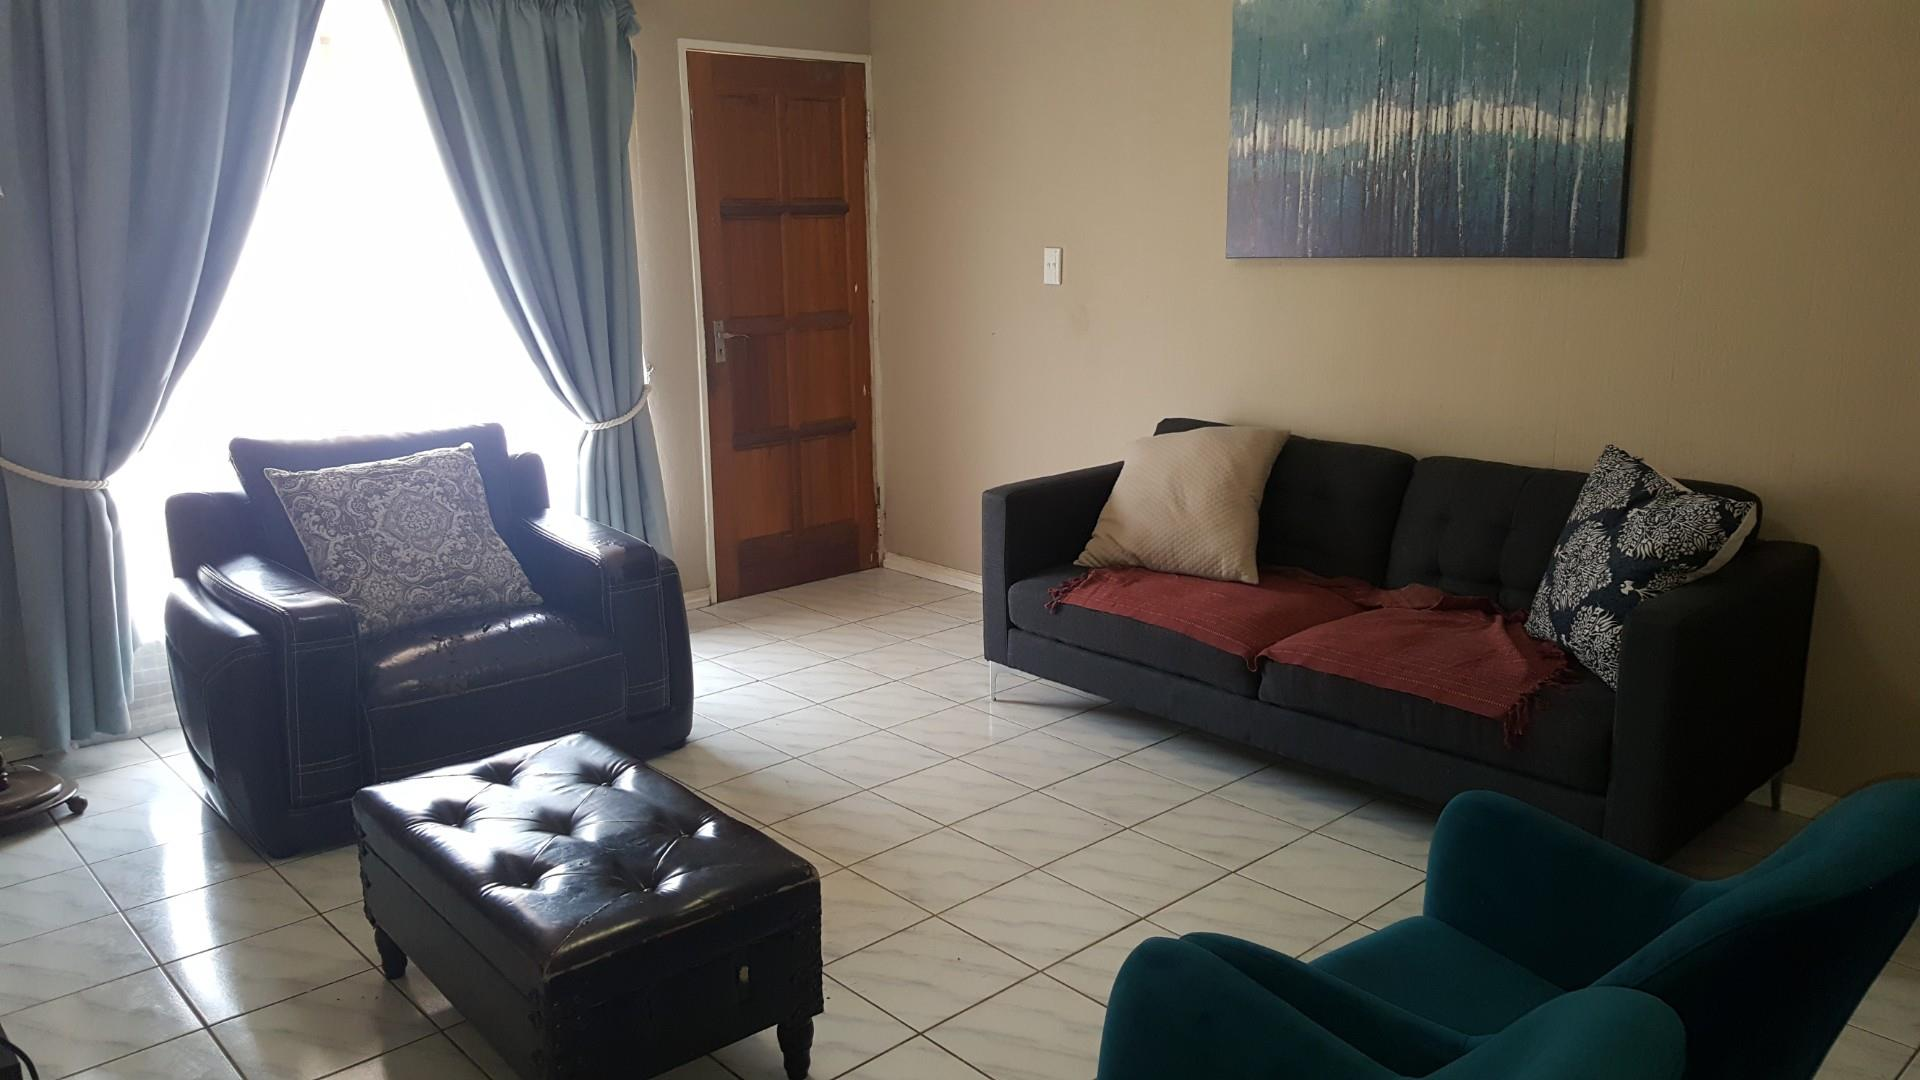 2 Bedroom Apartment / Flat For Sale in Meyersdal